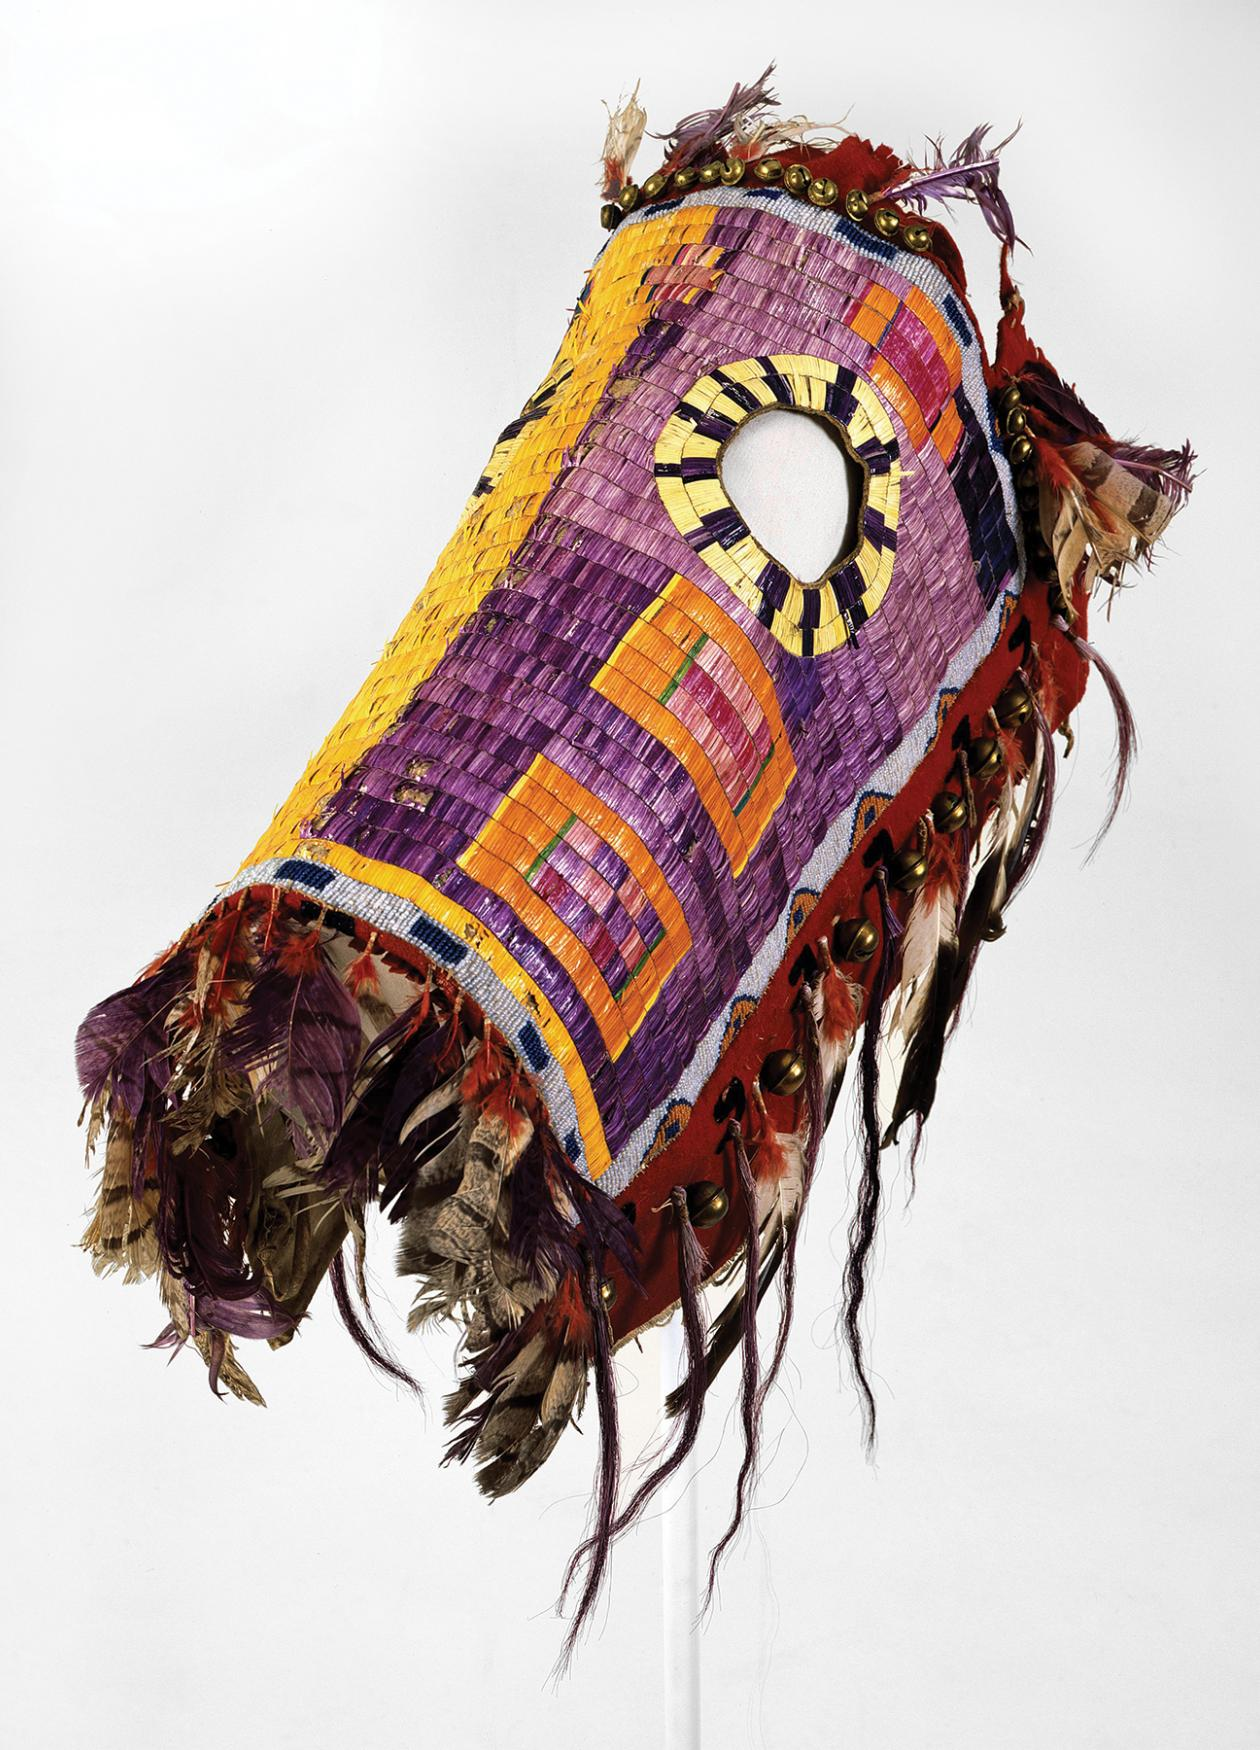 Photo of a colorful indigenous horse mask.